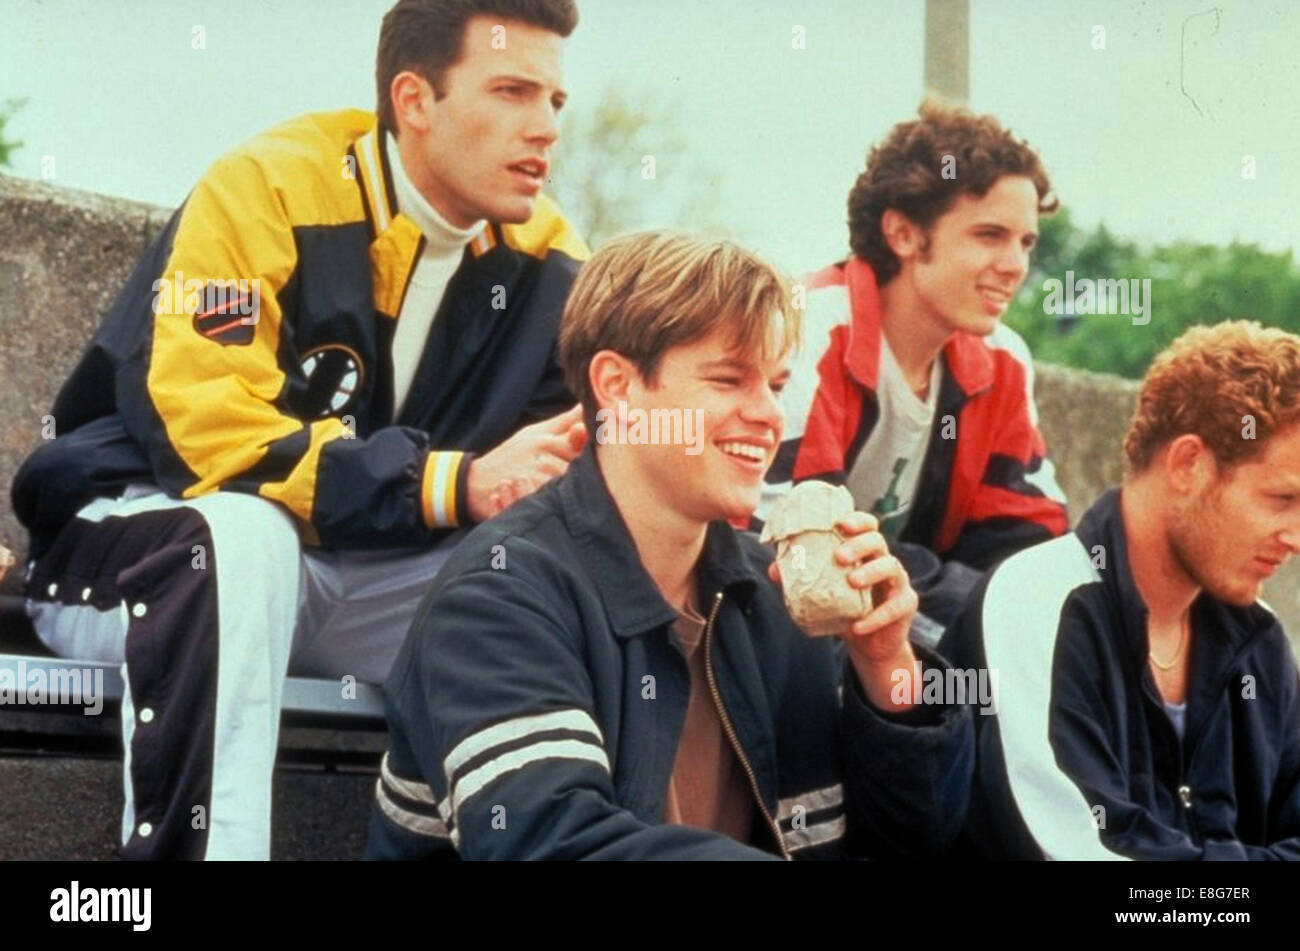 good will hunting miramax film from l ben affleck matt good will hunting 1997 miramax film from l ben affleck matt damon casey affleck and cole hauser